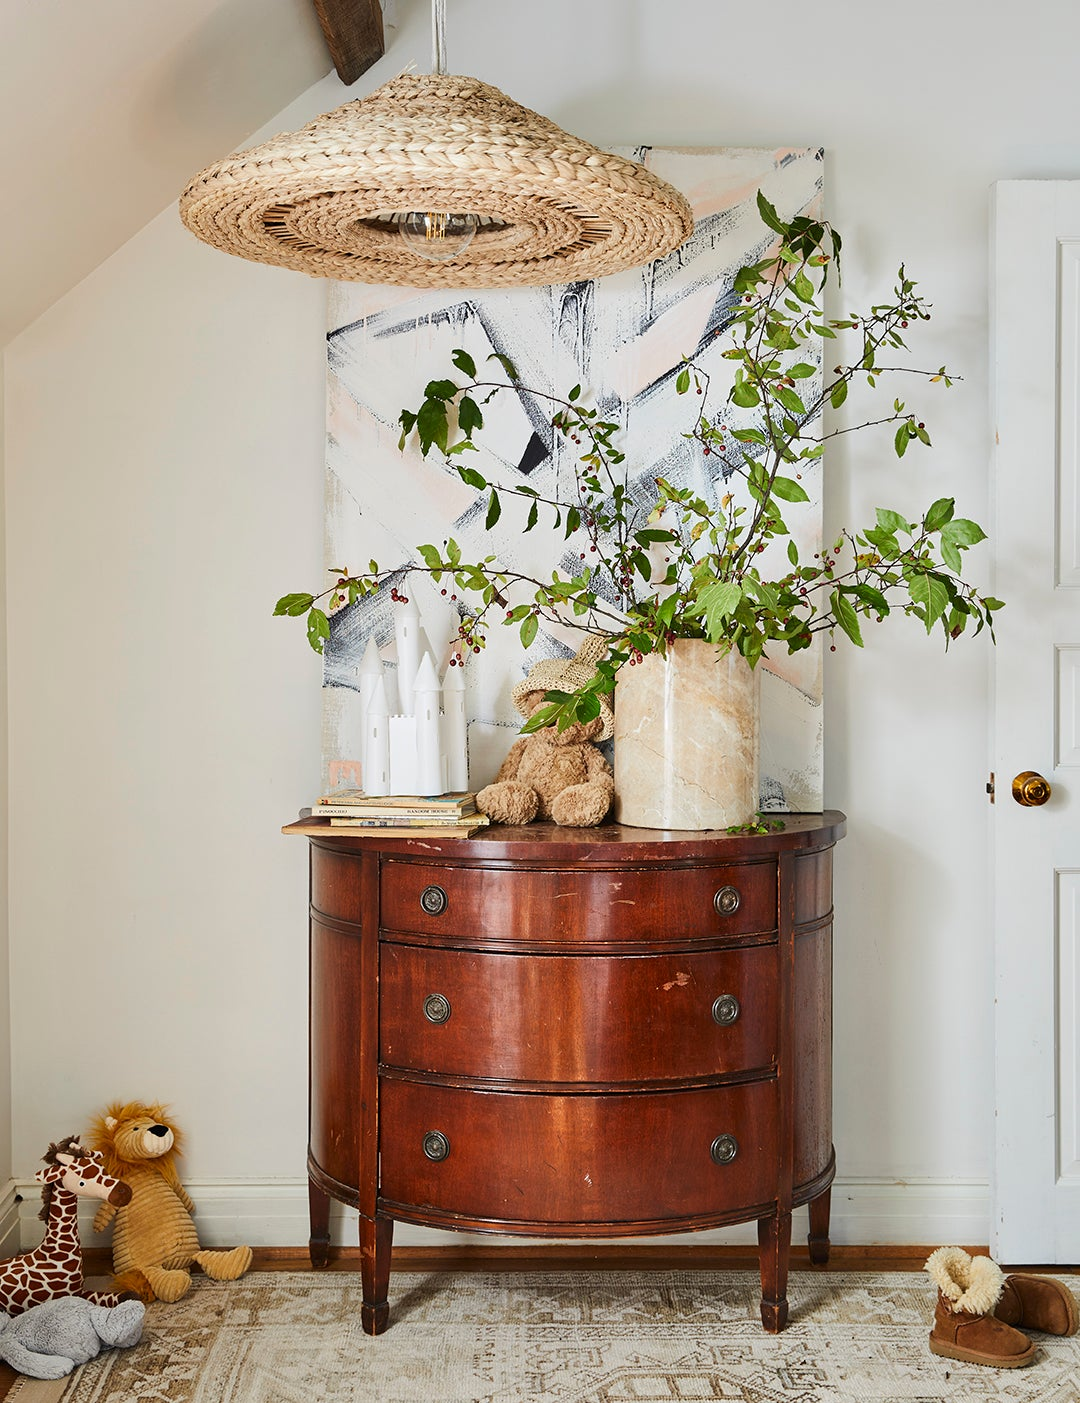 Leanne Ford home Pittsburgh - side table with woven pendant light